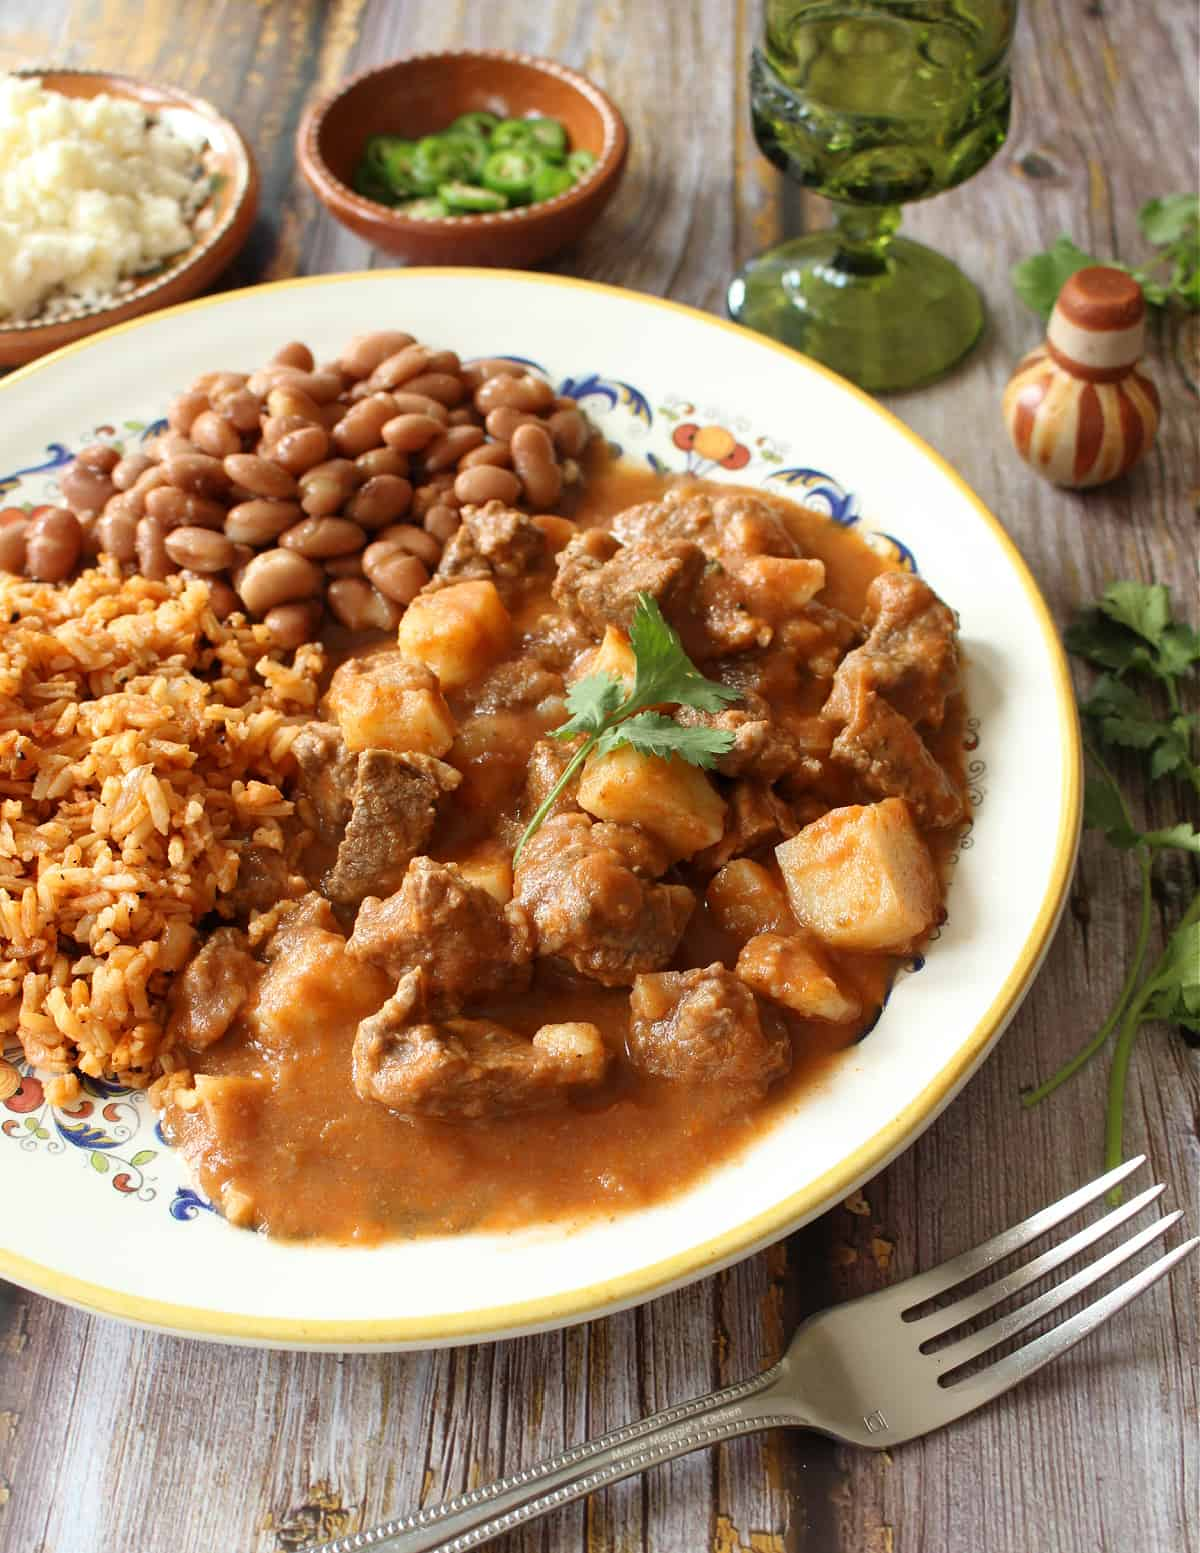 Carne con Papas served next to beans and rice and surrounded by toppings.